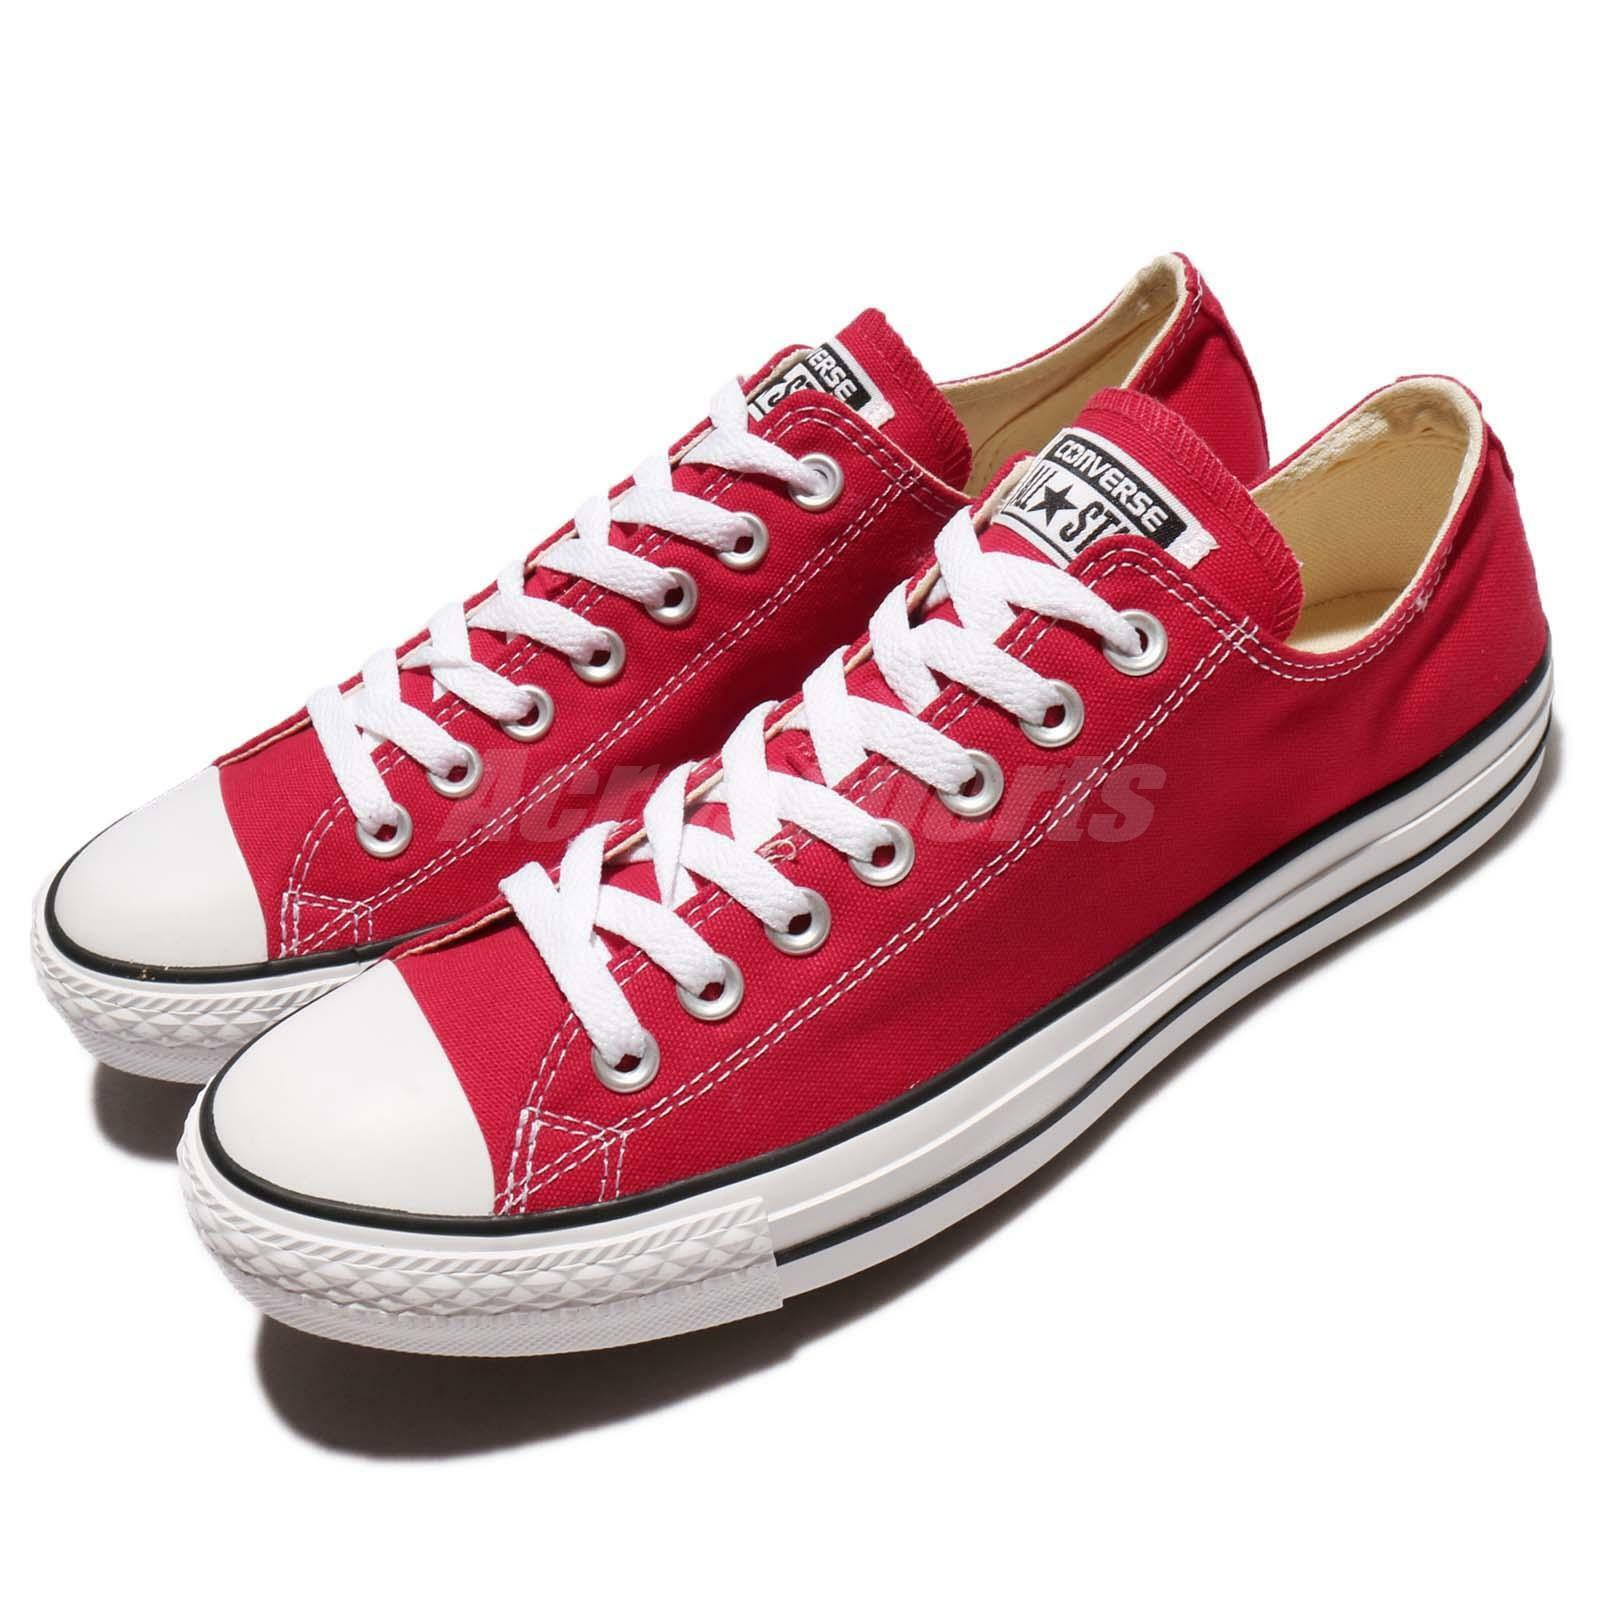 09c85a521d2f Converse All Star OX OX OX Chuck Taylor Red White Men Canvas Classic Shoes  M9696C f81370